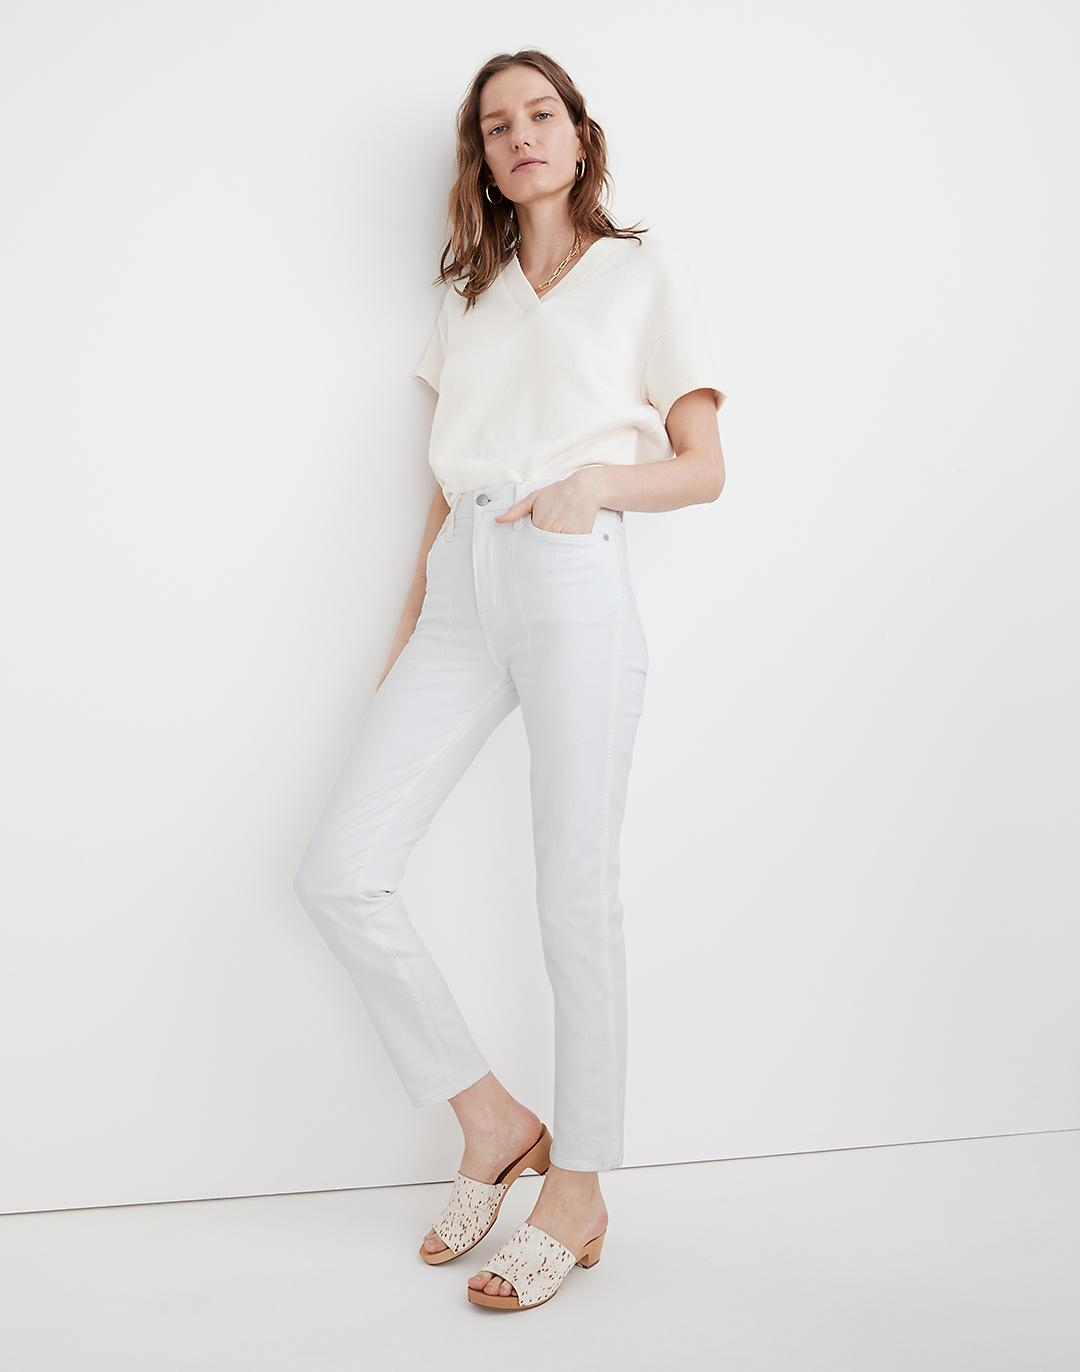 Stovepipe Jeans in Pure White